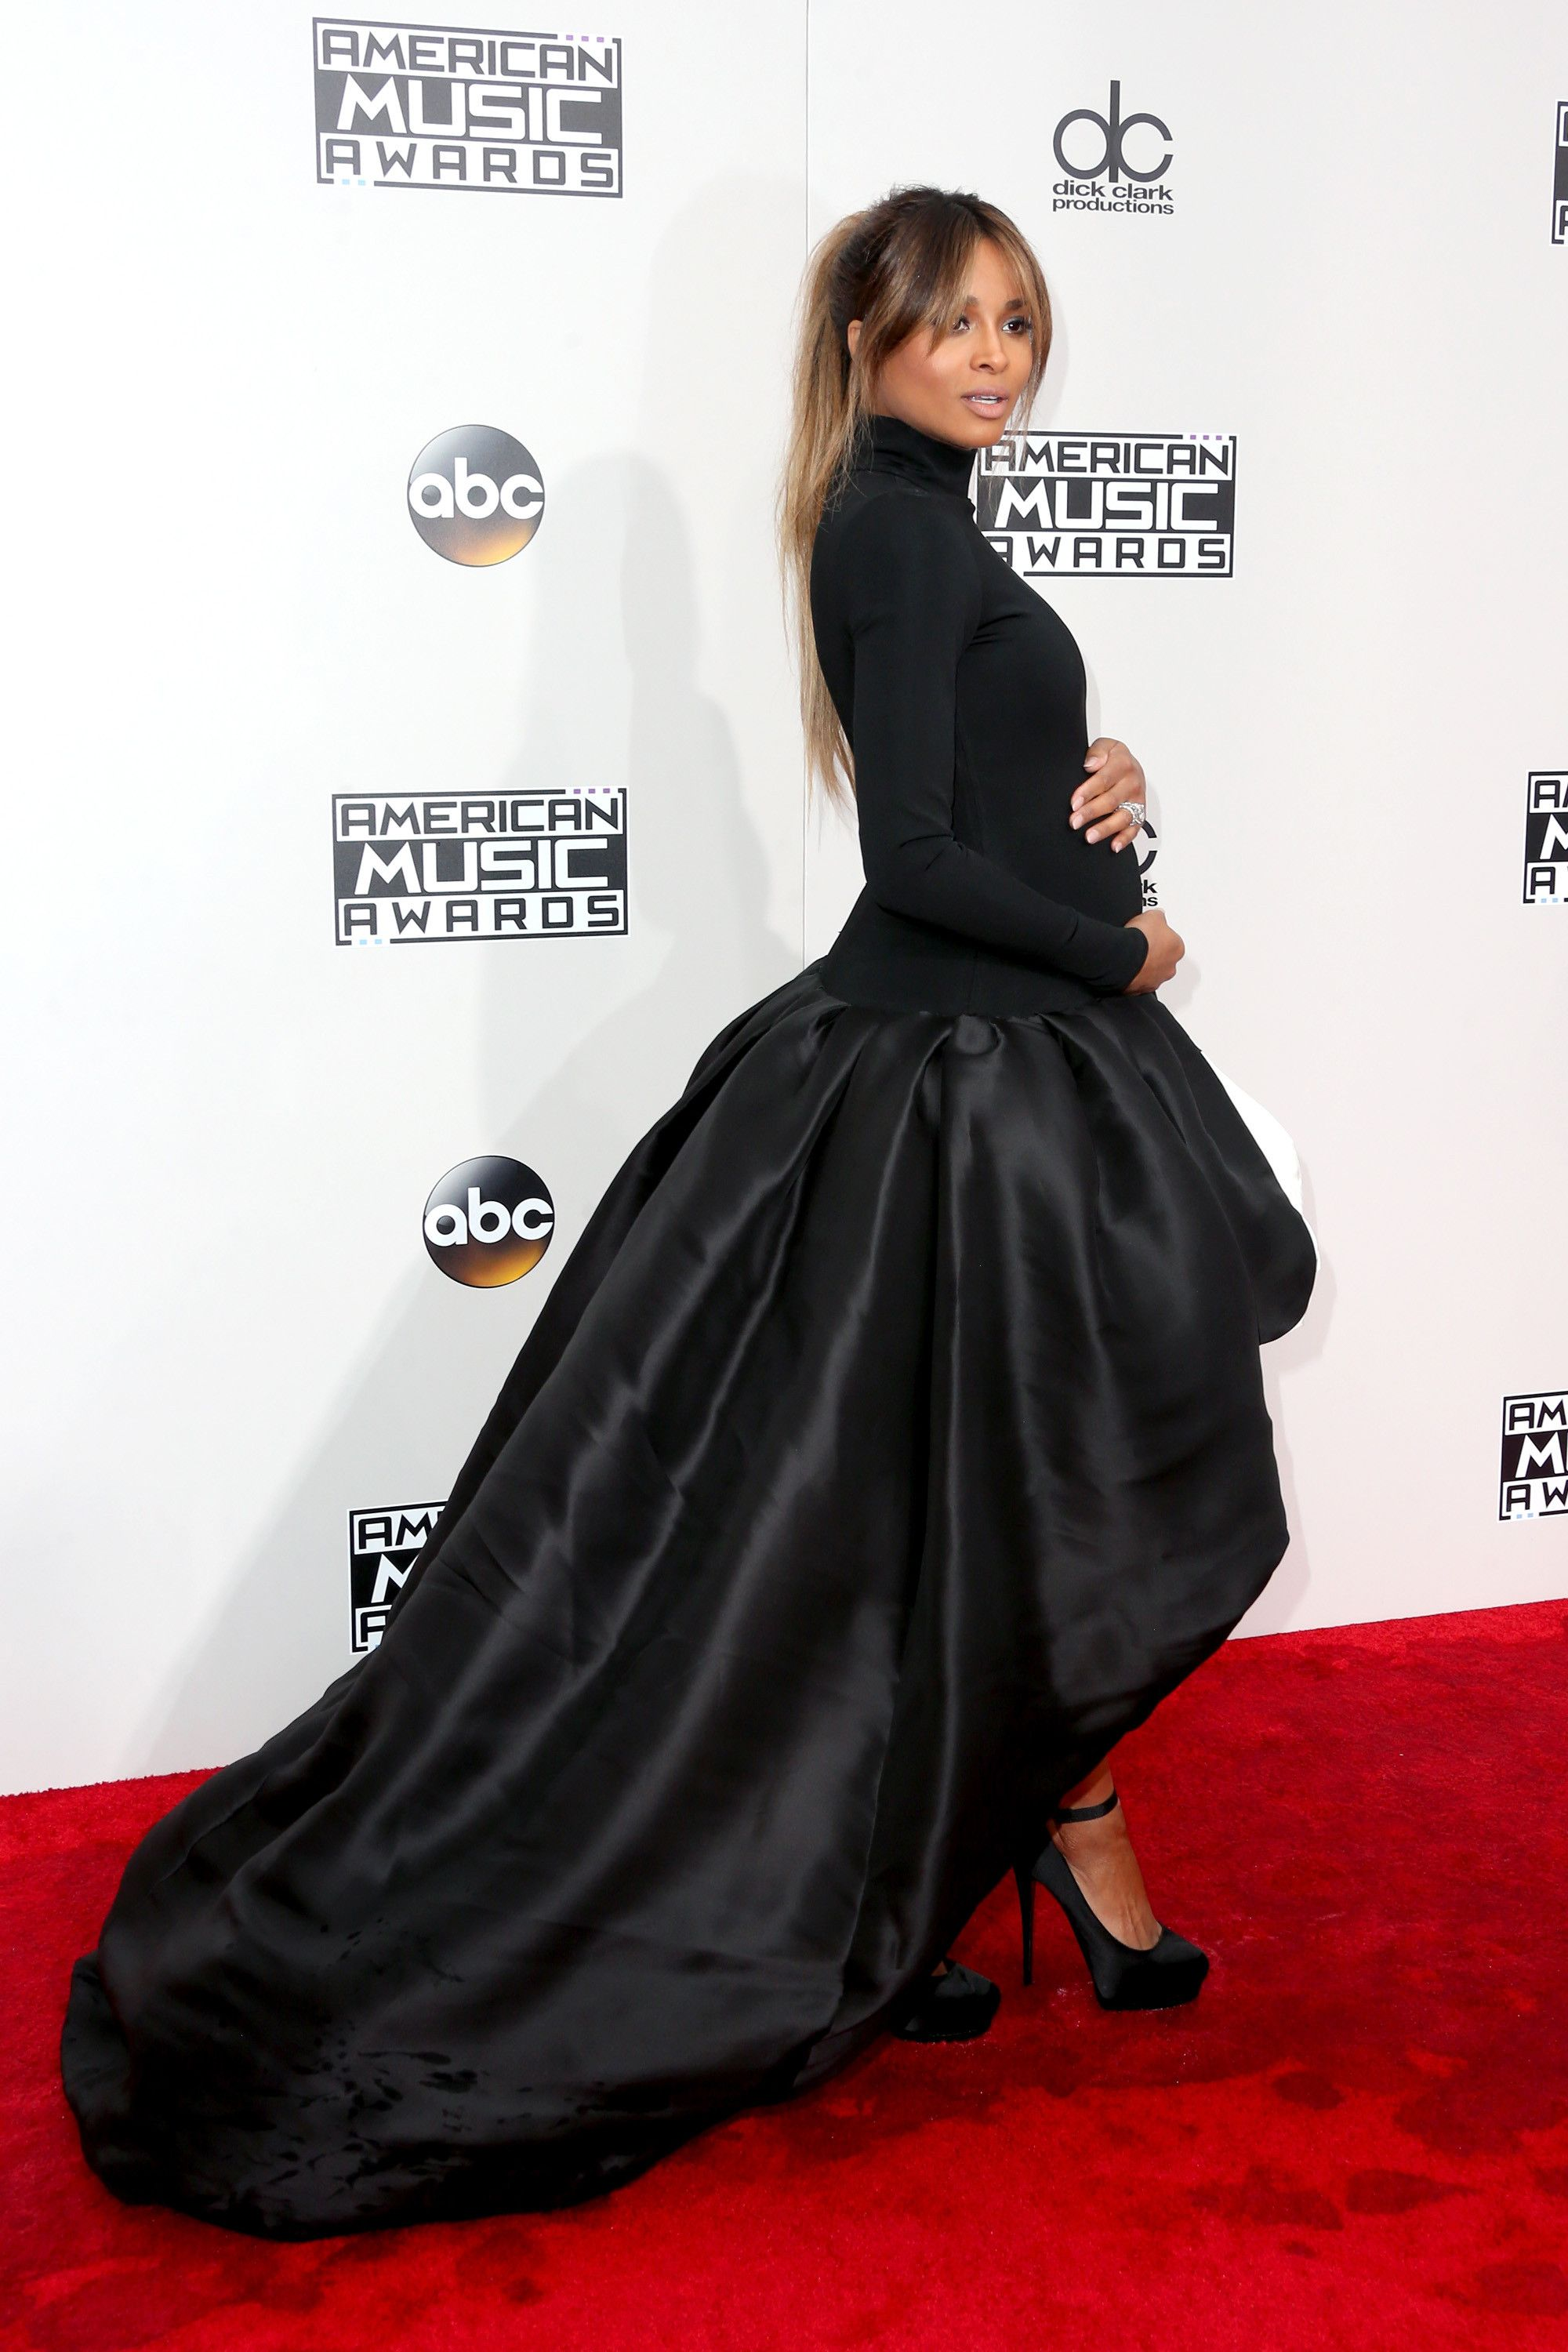 ab2d7ebd610 It Will Be Hard to Top These Epic AMAs Red Carpet Looks